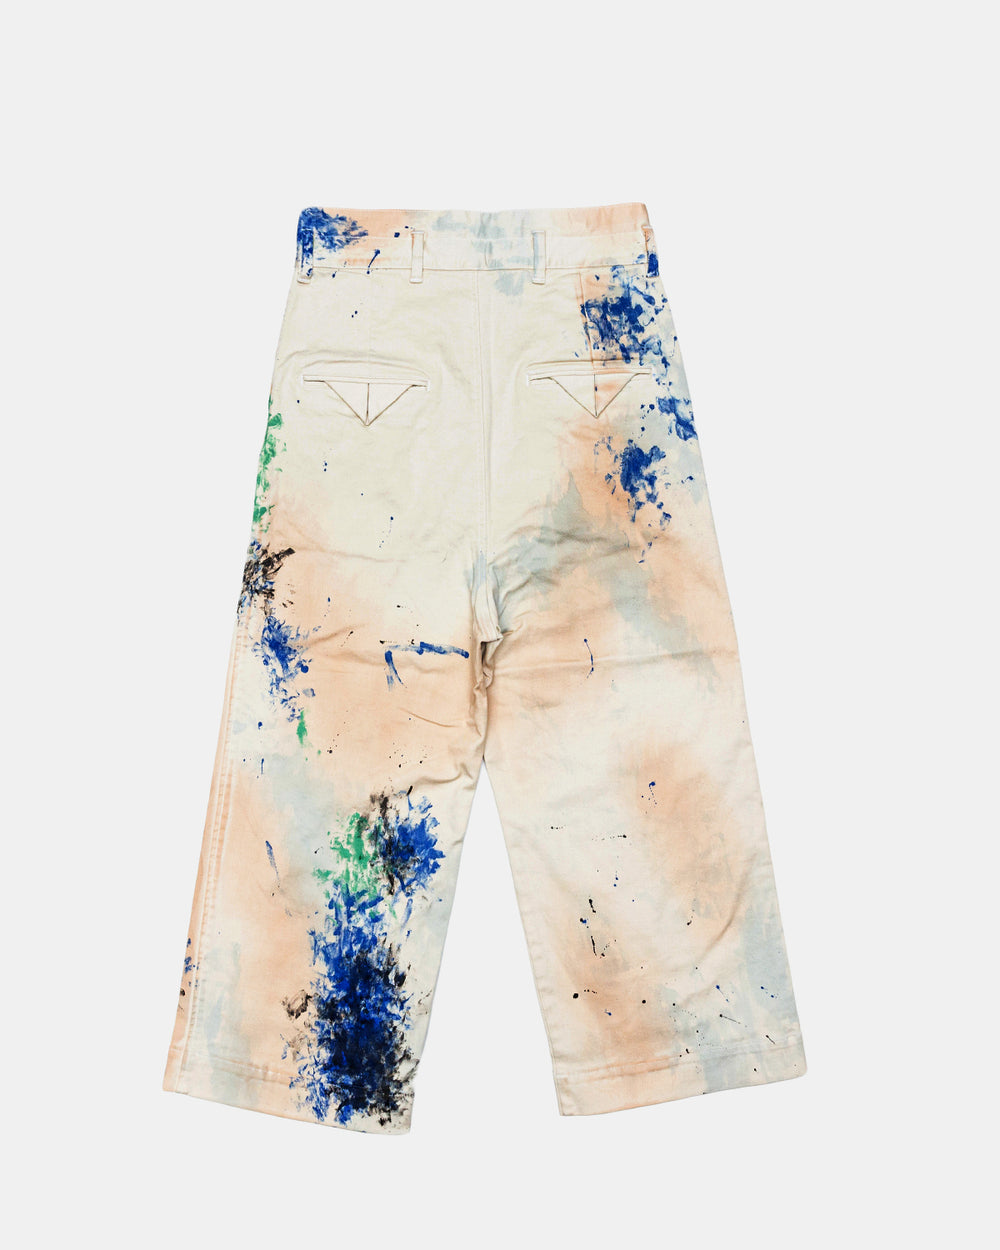 Sasquatchfabrix - Paint Docan Pants (White | Paint Splatter)